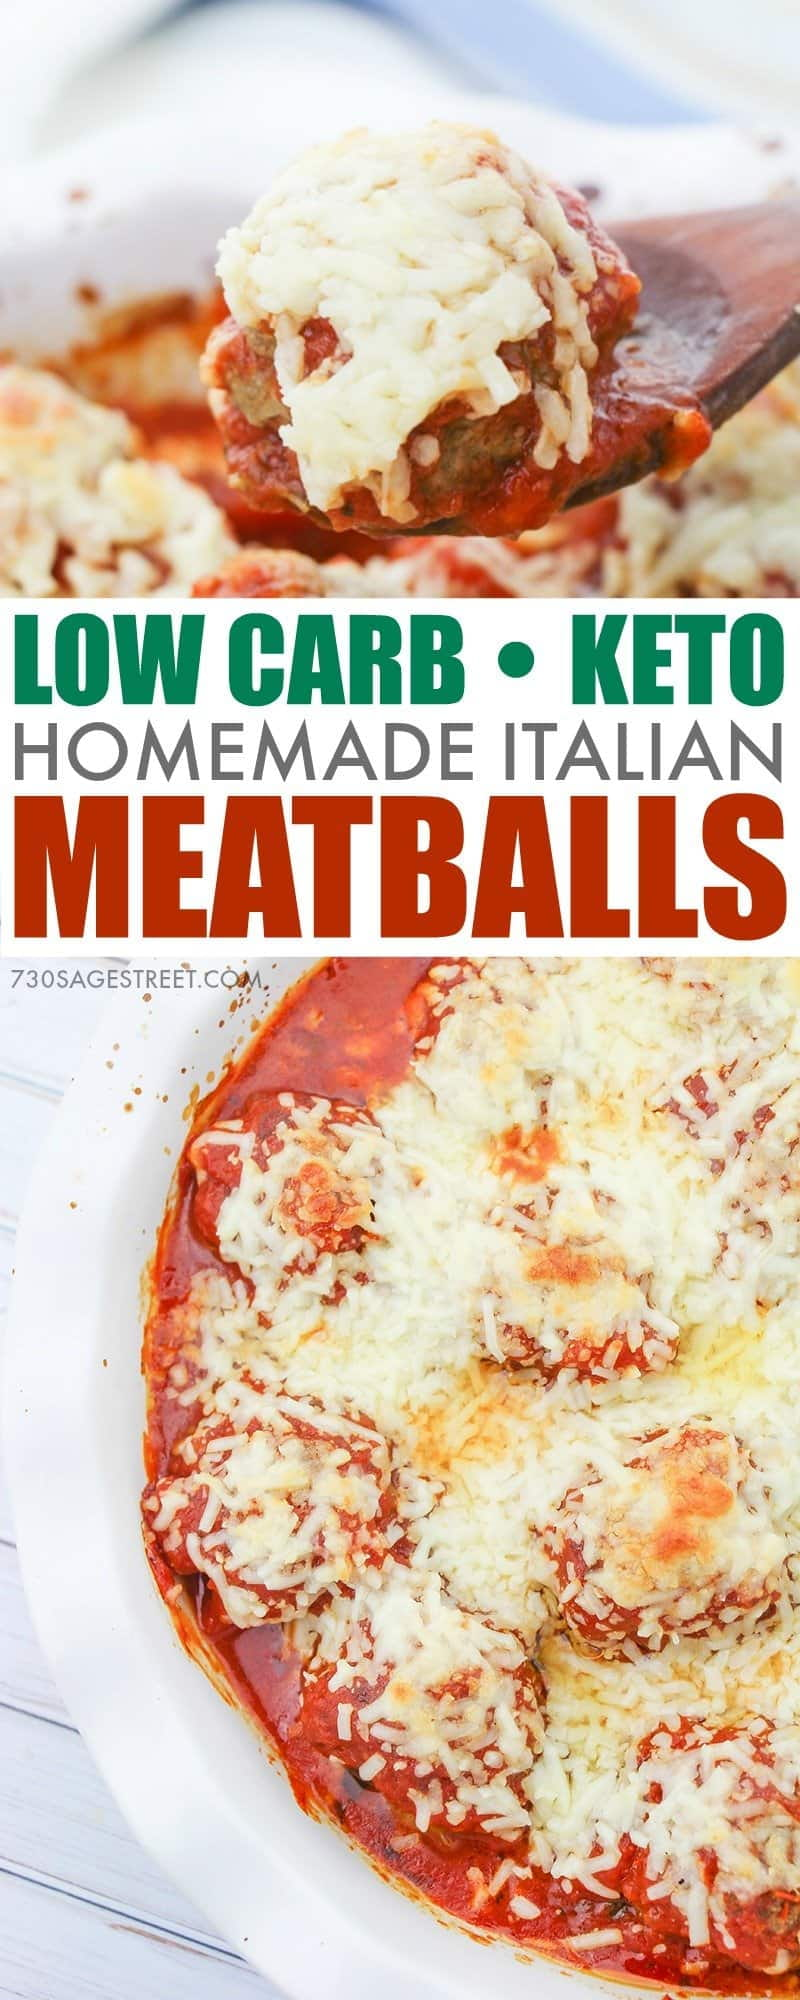 keto meatballs photo collage with text